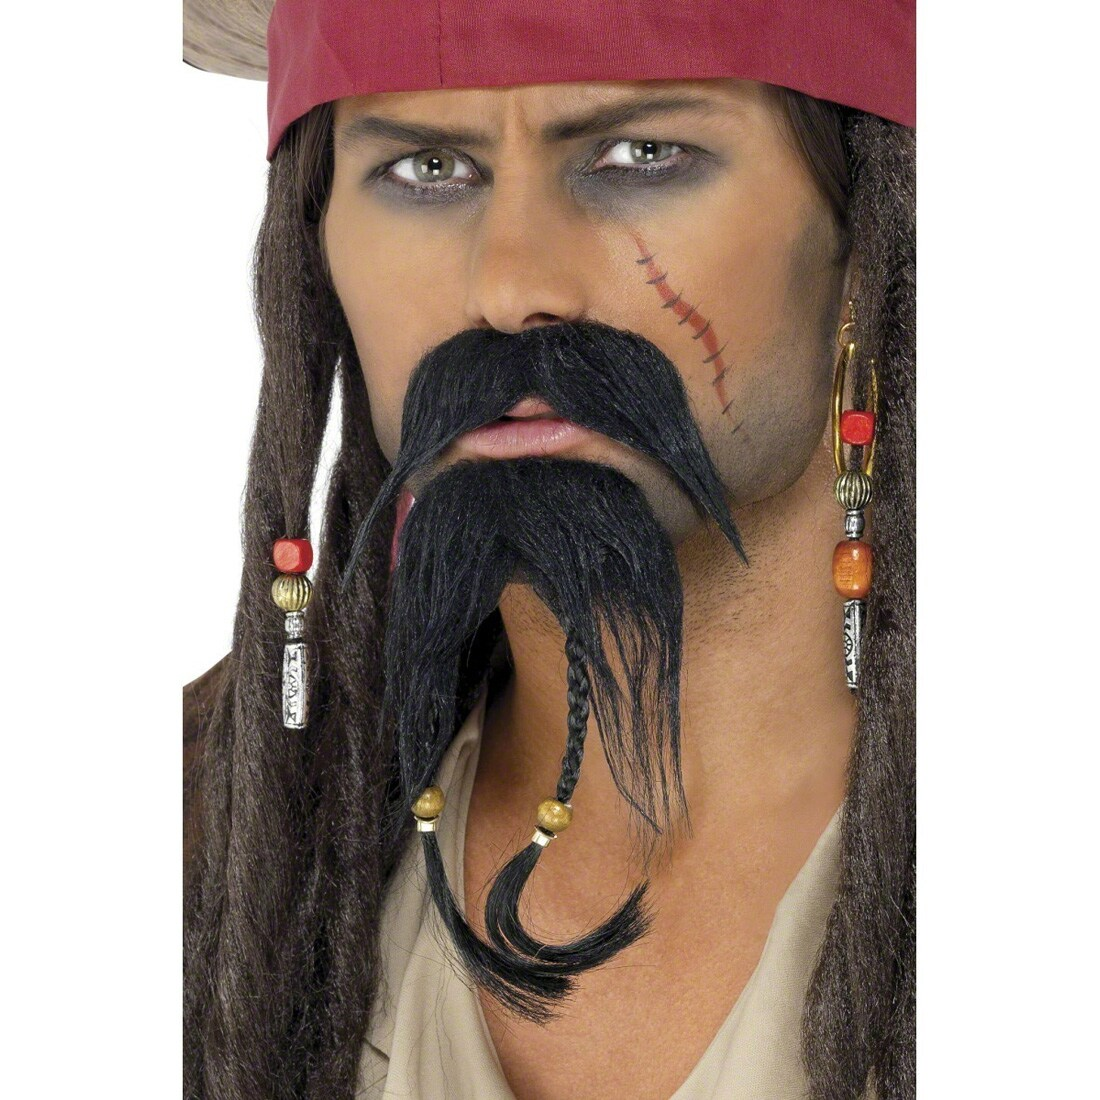 Piraten Bart Bart Set Pirat Jack Sparrow Piratenset 5 95